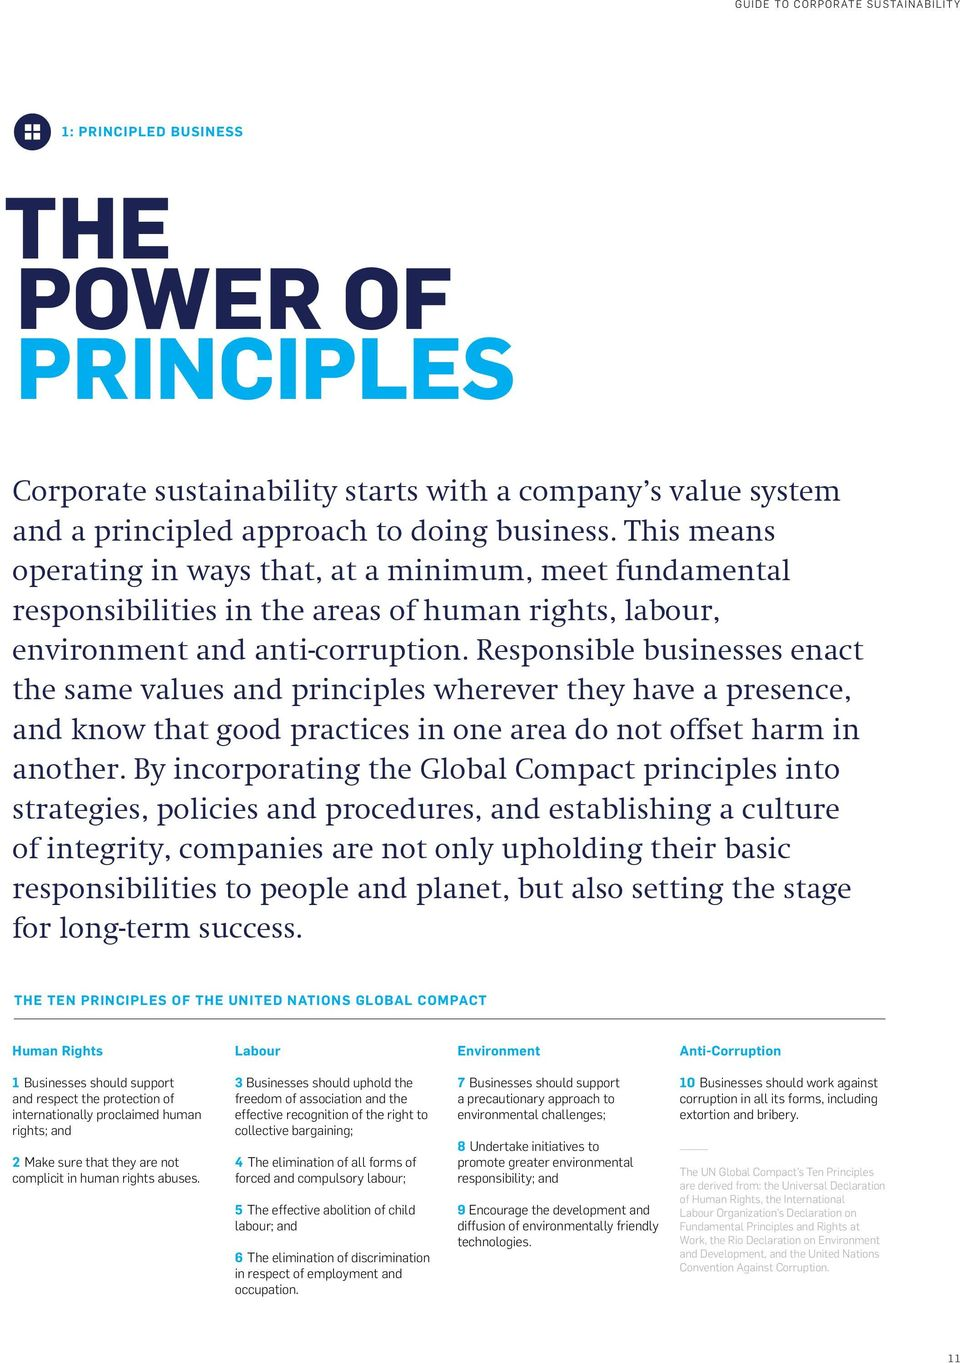 Responsible businesses enact the same values and principles wherever they have a presence, and know that good practices in one area do not offset harm in another.